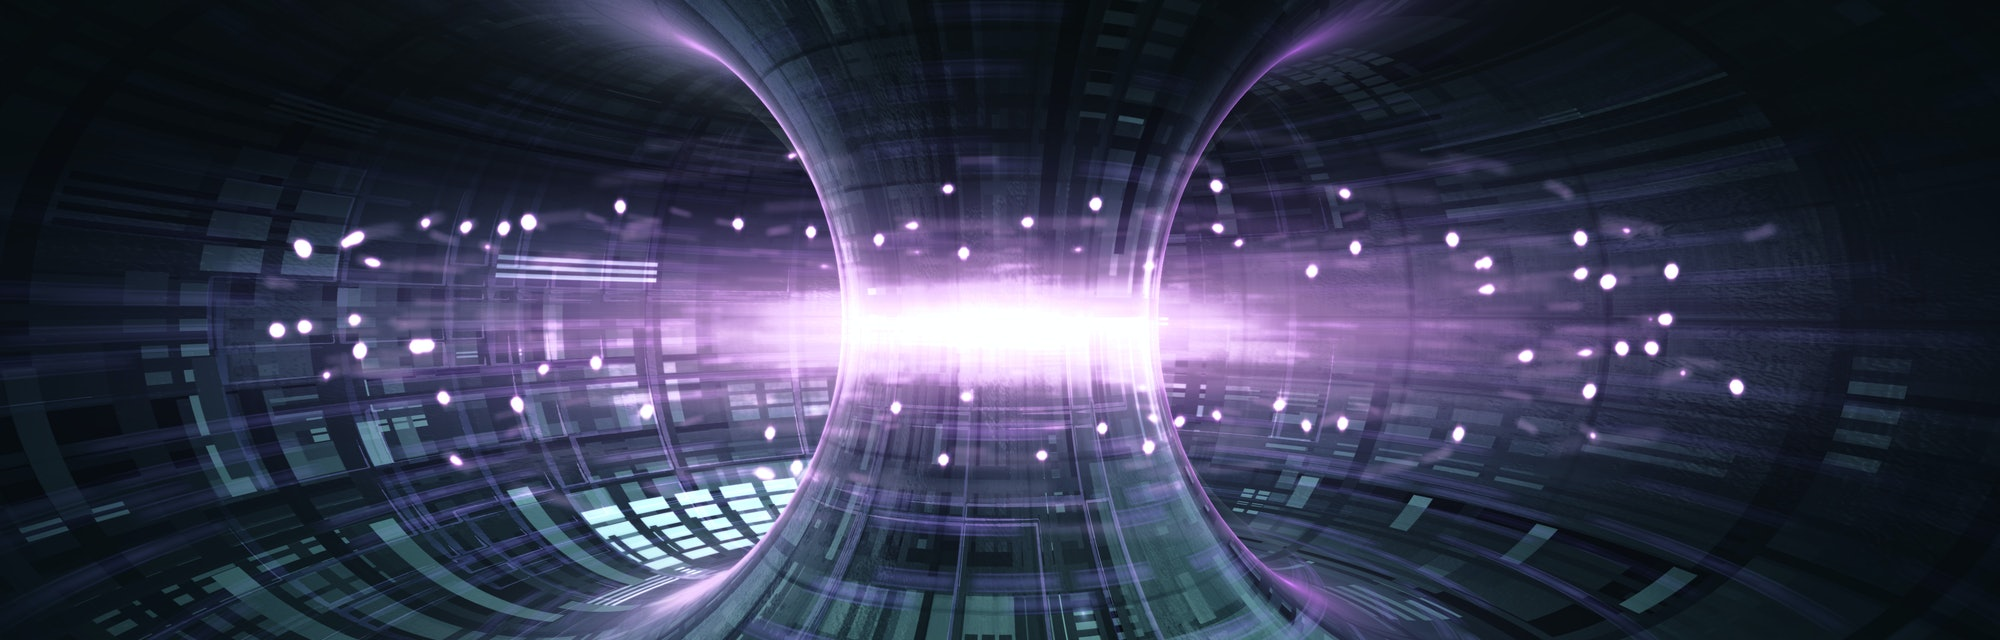 High Energy Particles Flow Through A Tokamak Or Doughnut-Shaped Device. Antigravity, Magnetic Field,...